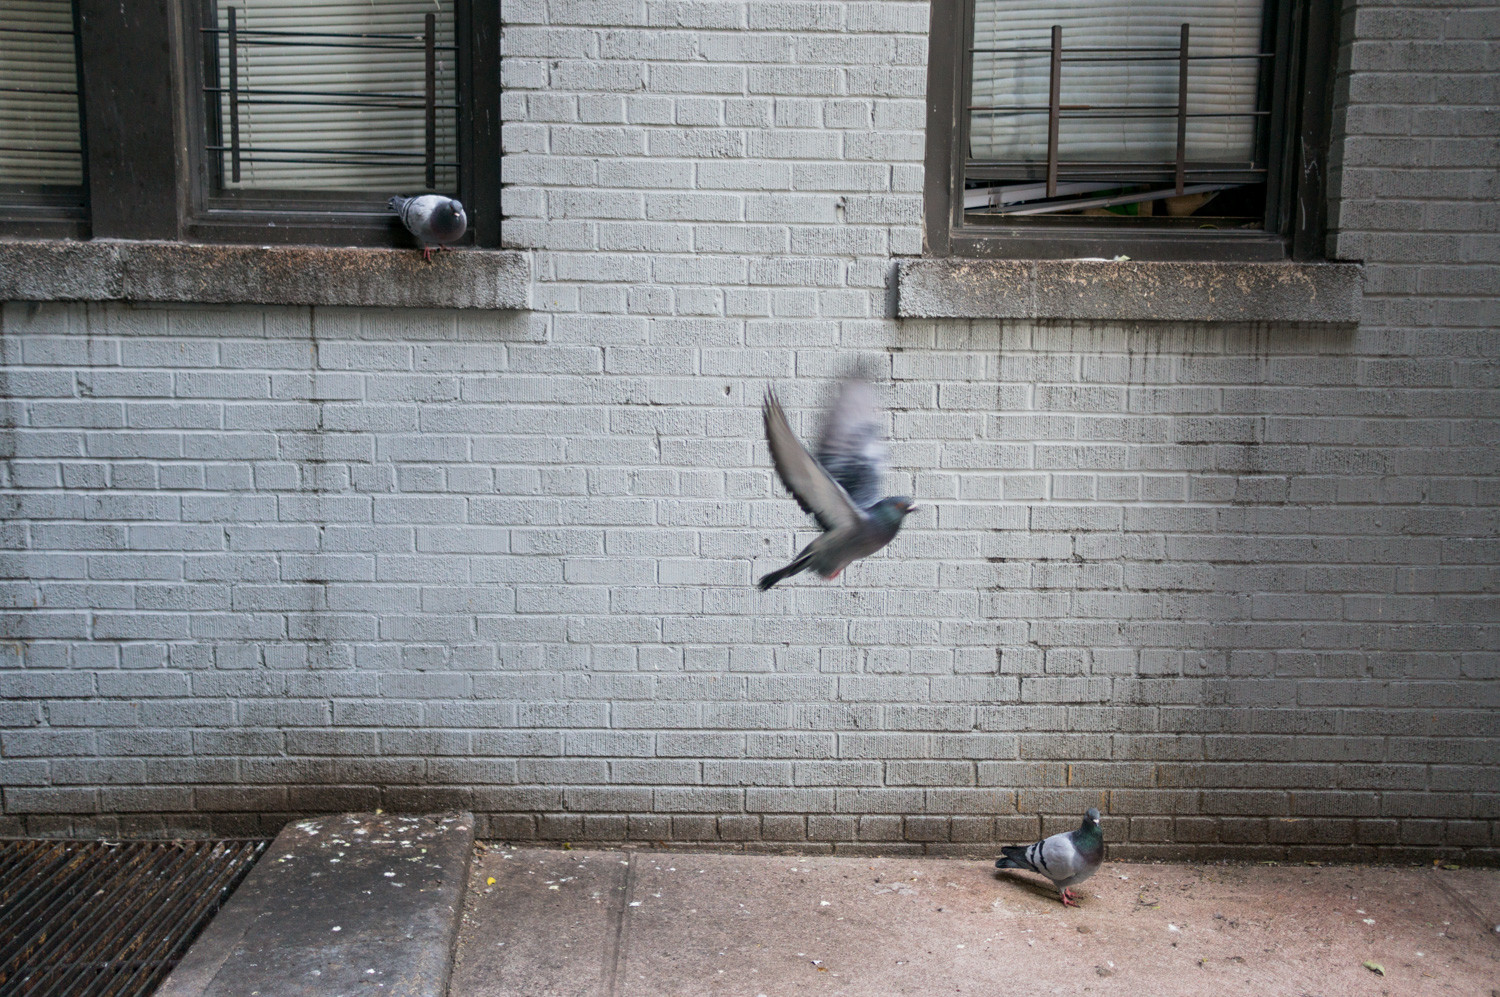 Pigeons congregate outside 1 Marble Hill Ave., a building that has been plagued by problems in recent years. That's slowly changing, however, thanks to the efforts of residents Alycya Miller and Crystal Hawkins.